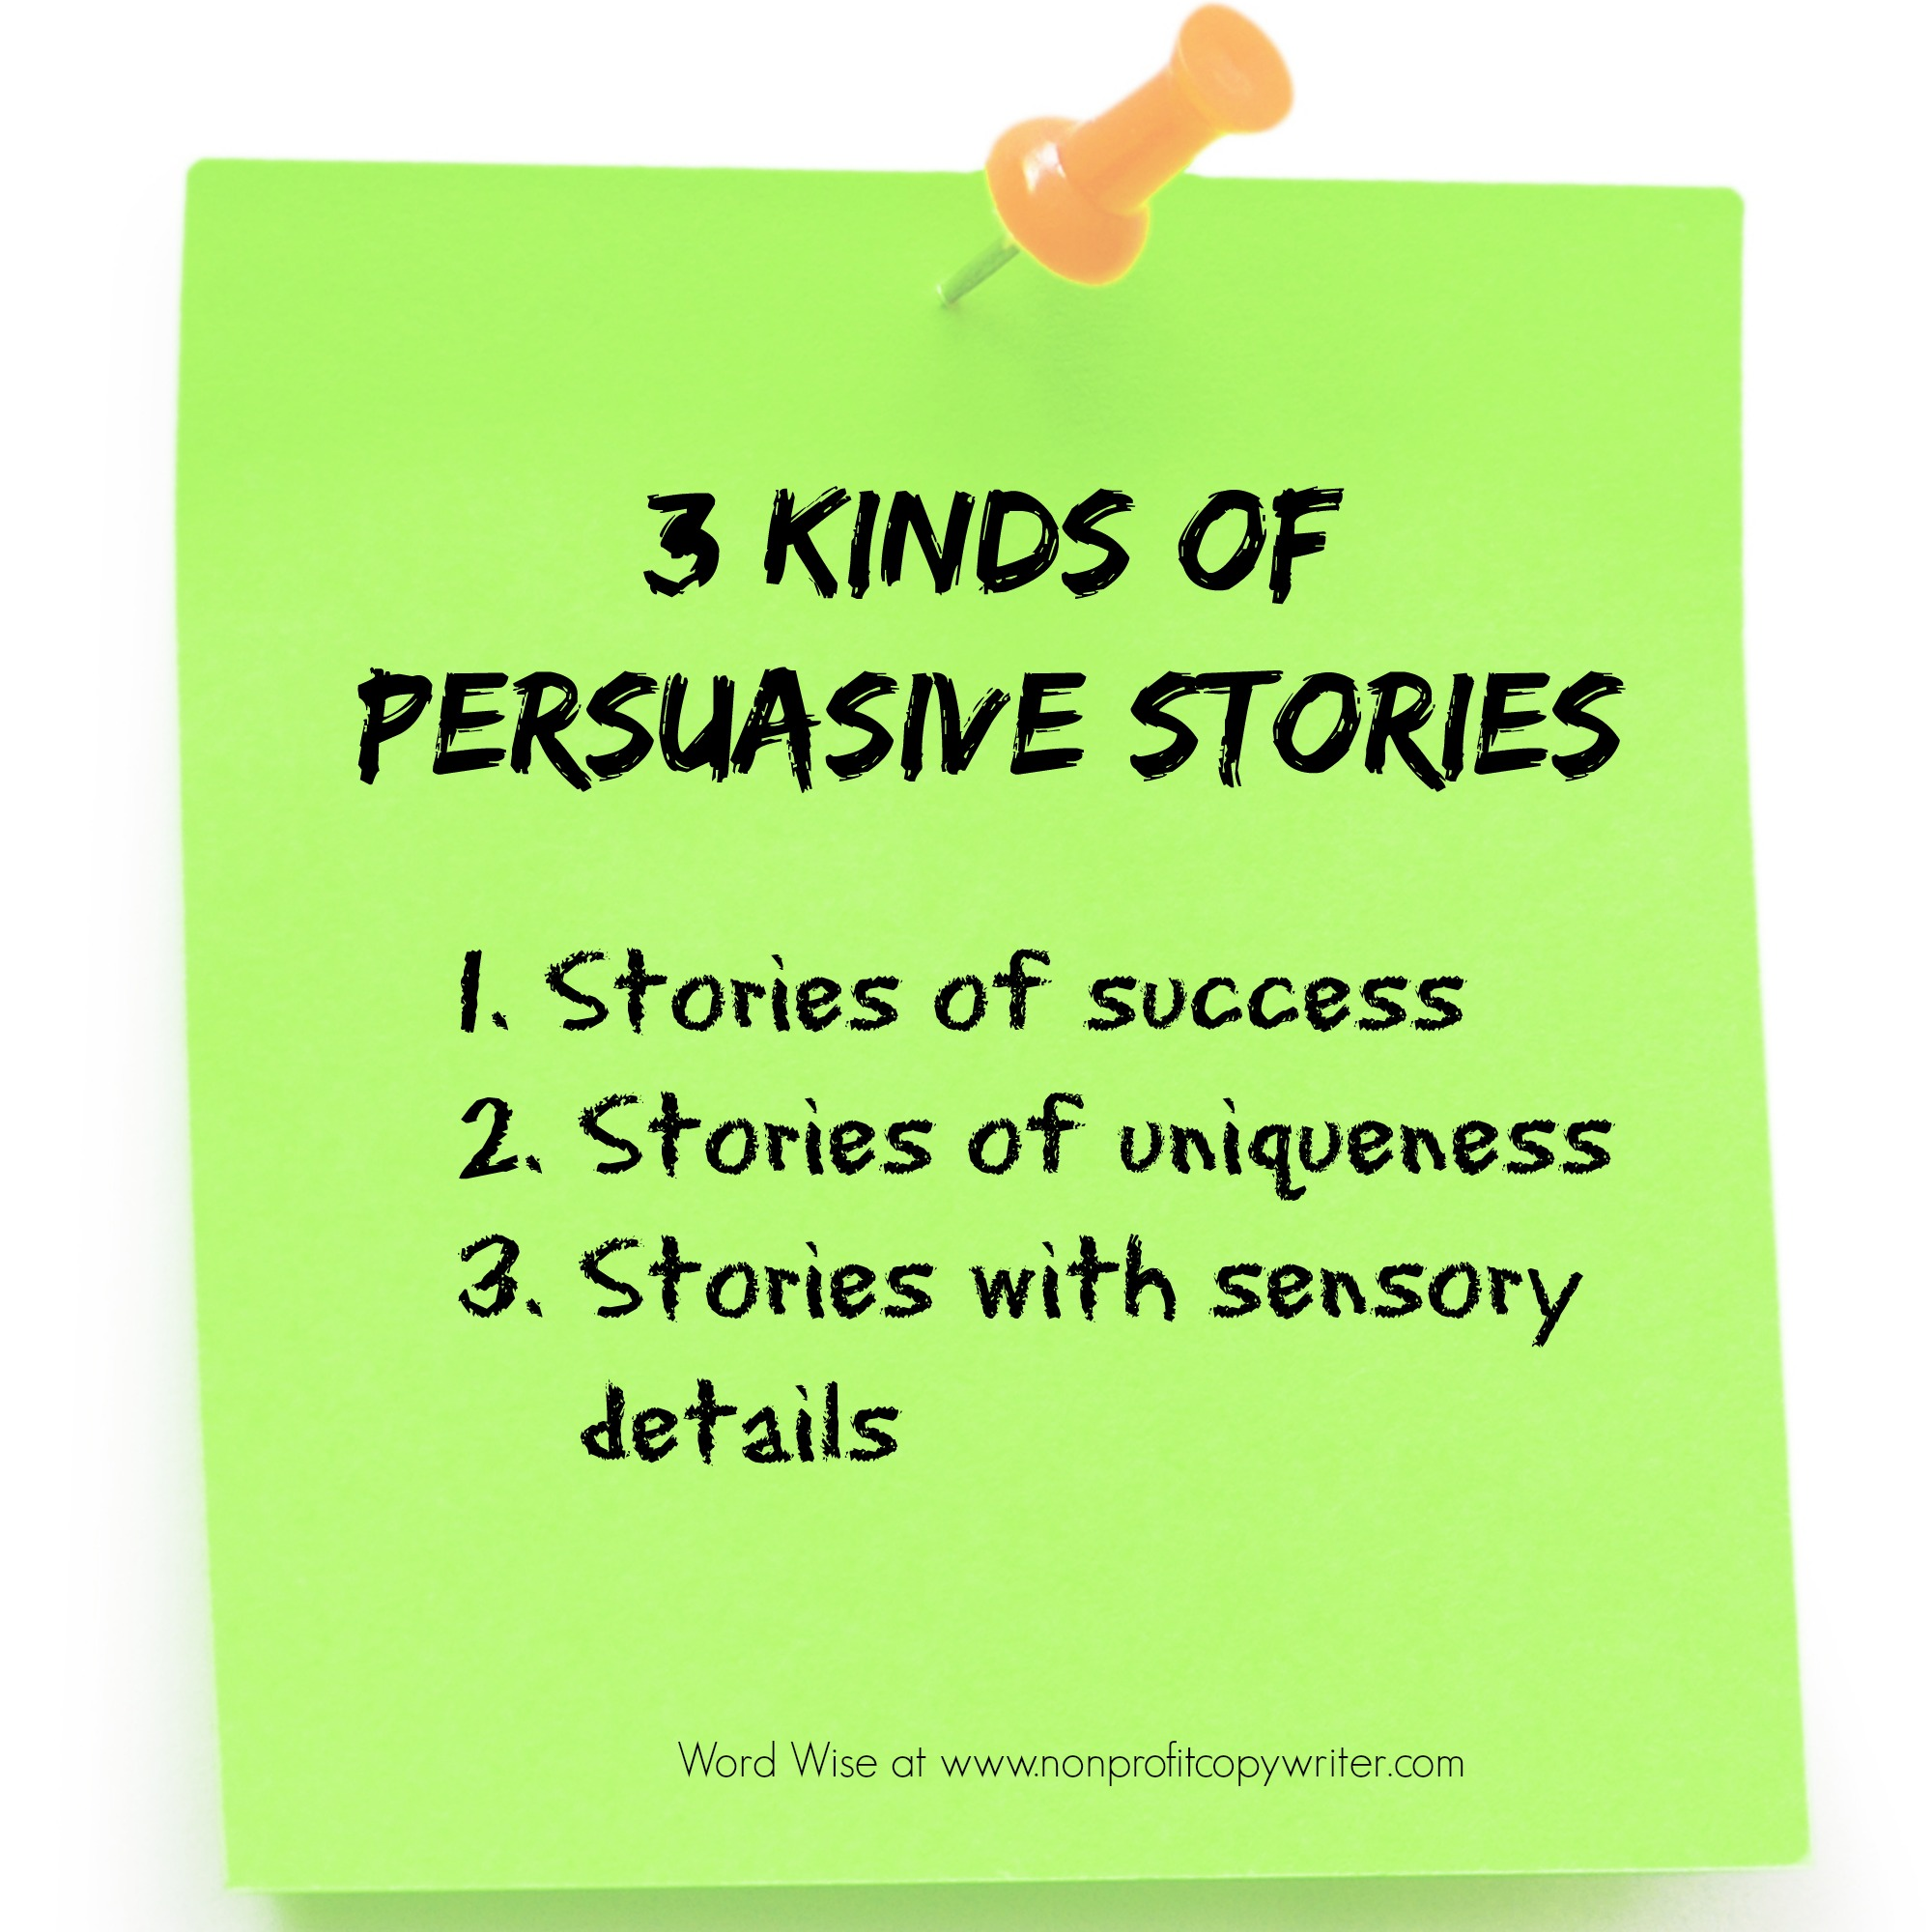 3 kinds of persuasive stories with Word Wise at Nonprofit Copywriter